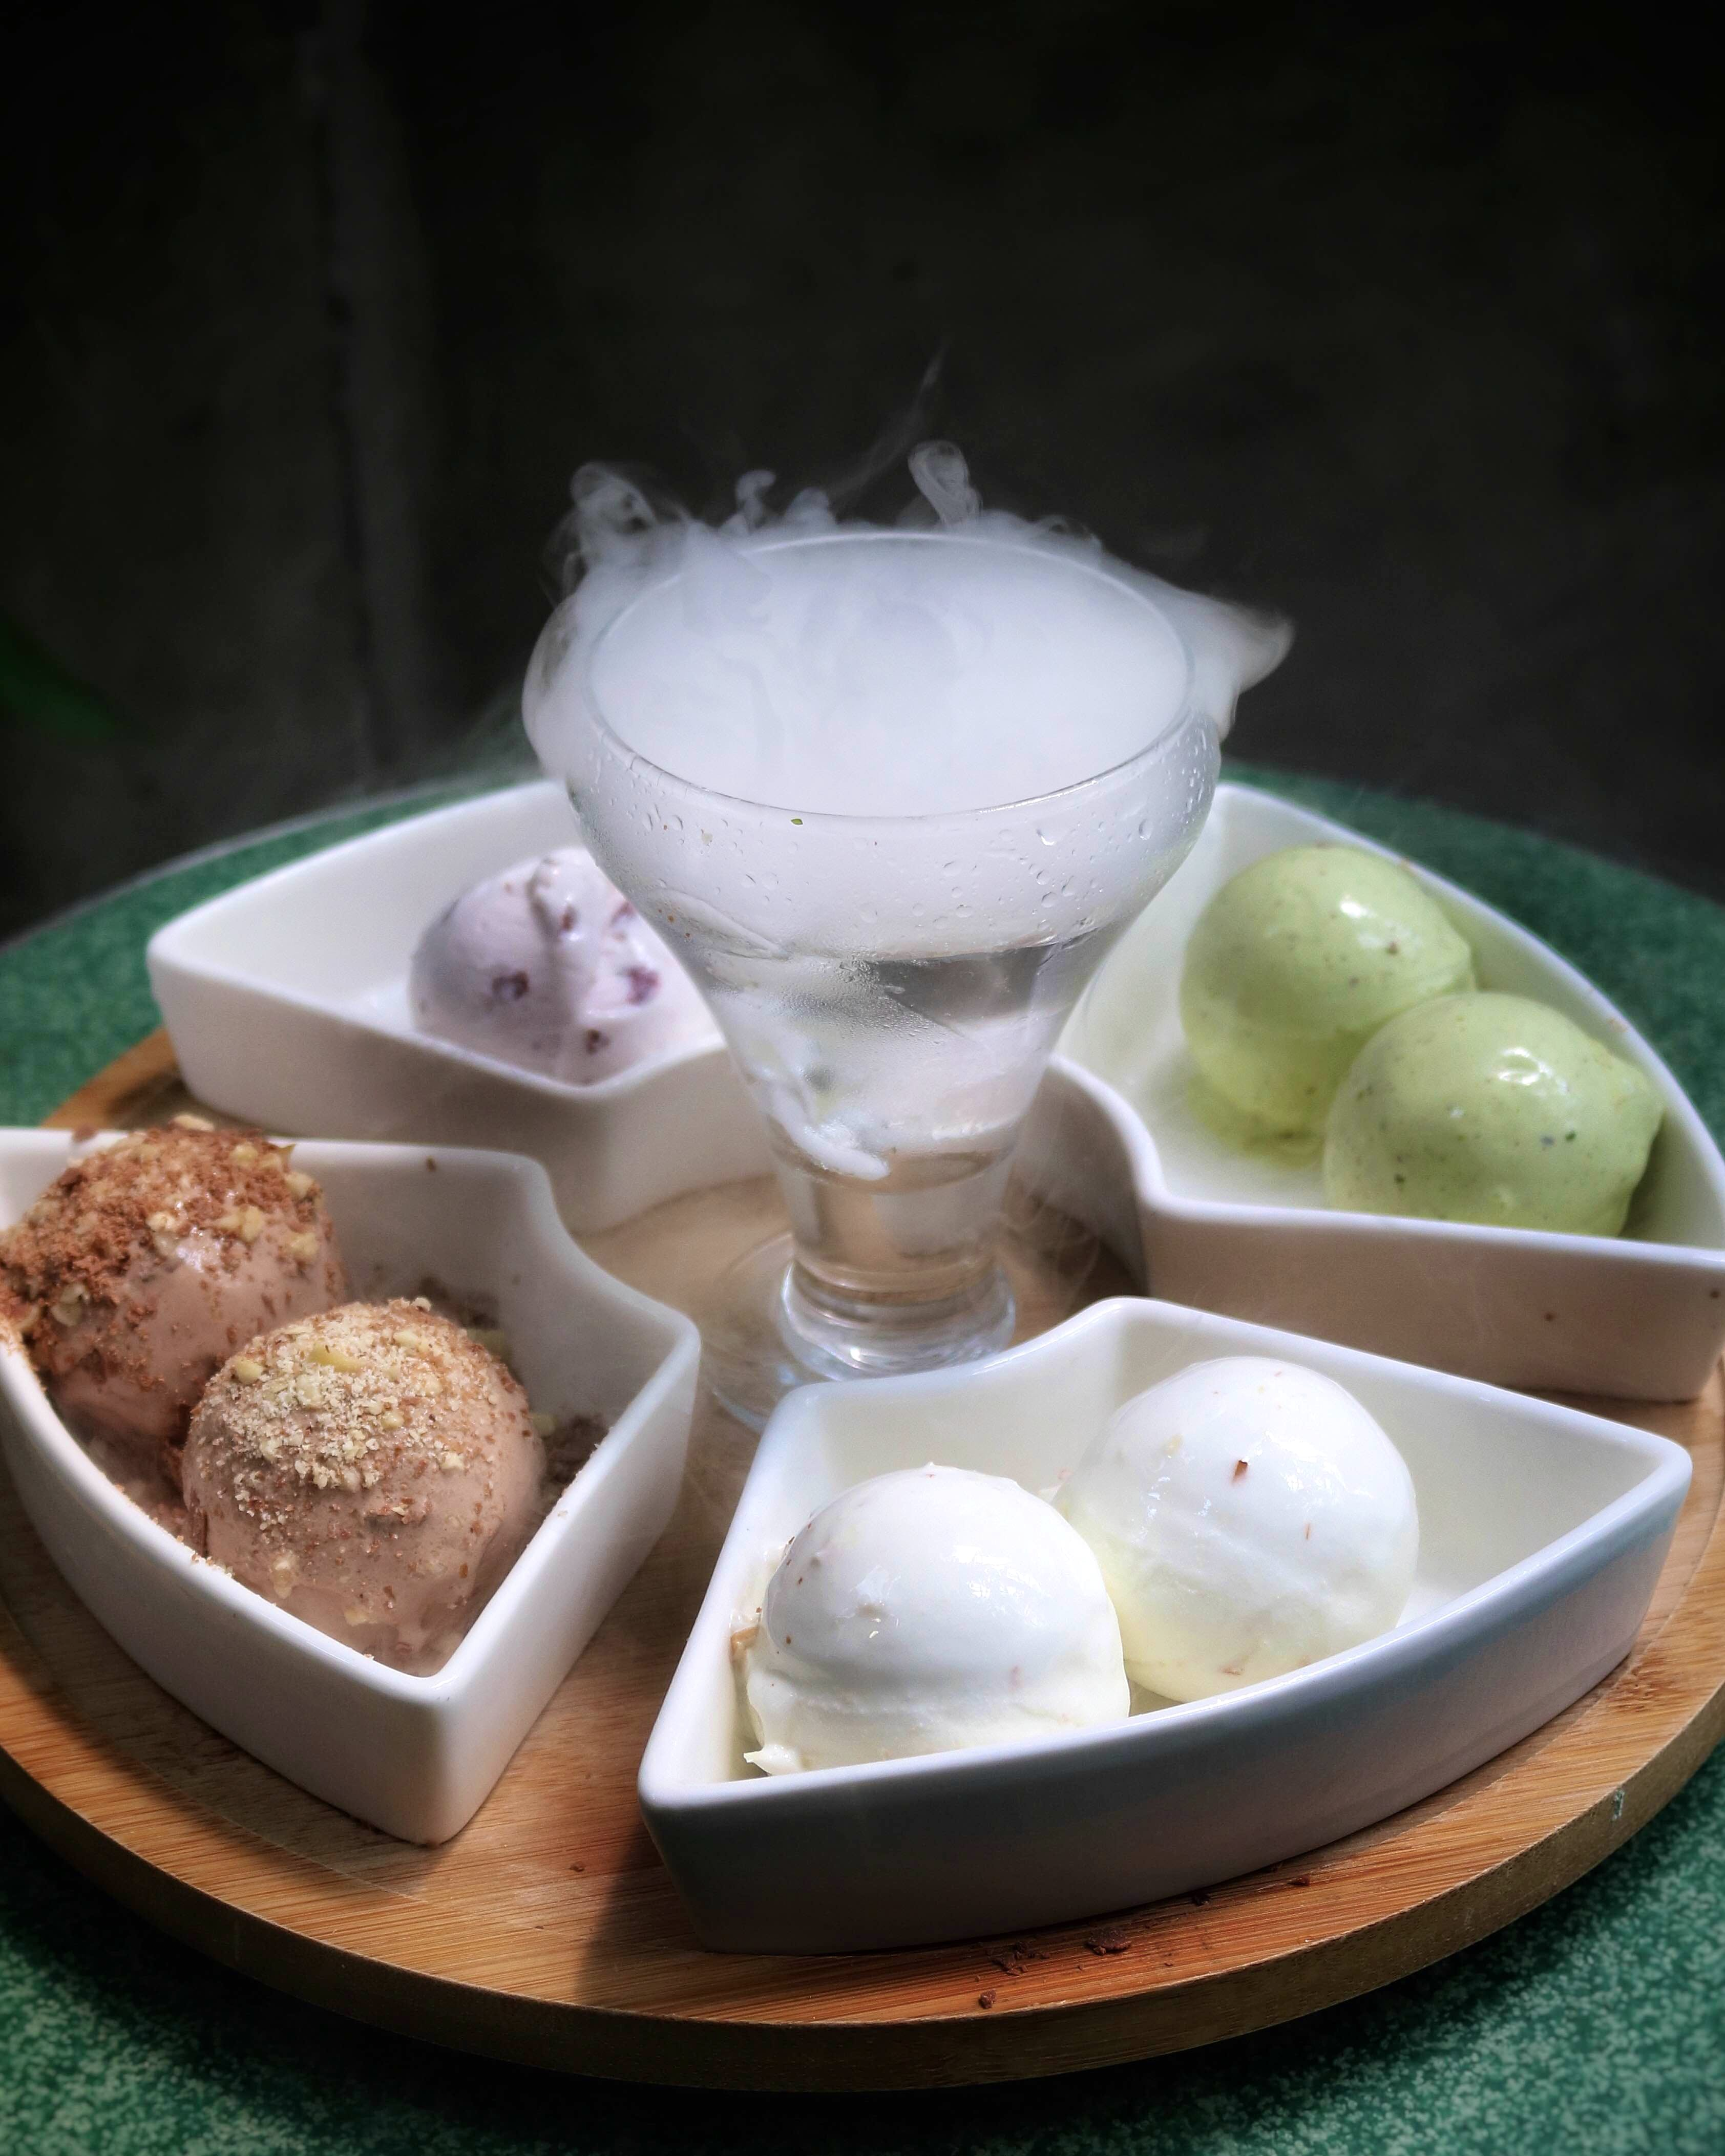 Ever Heard Of An Ice-Cream Platter? Head To Naturals Now!